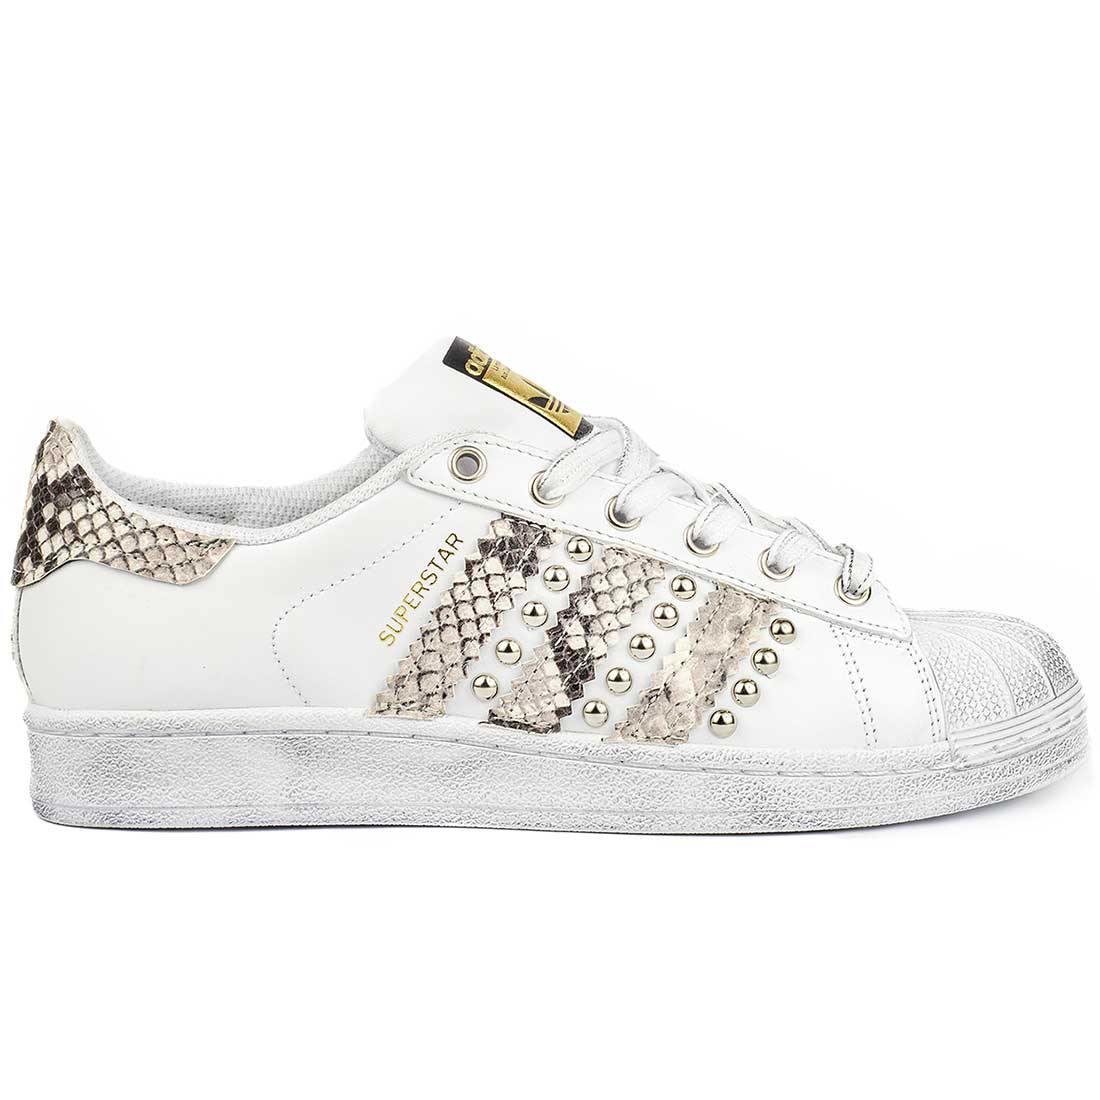 Adidas Superstar Pitonate